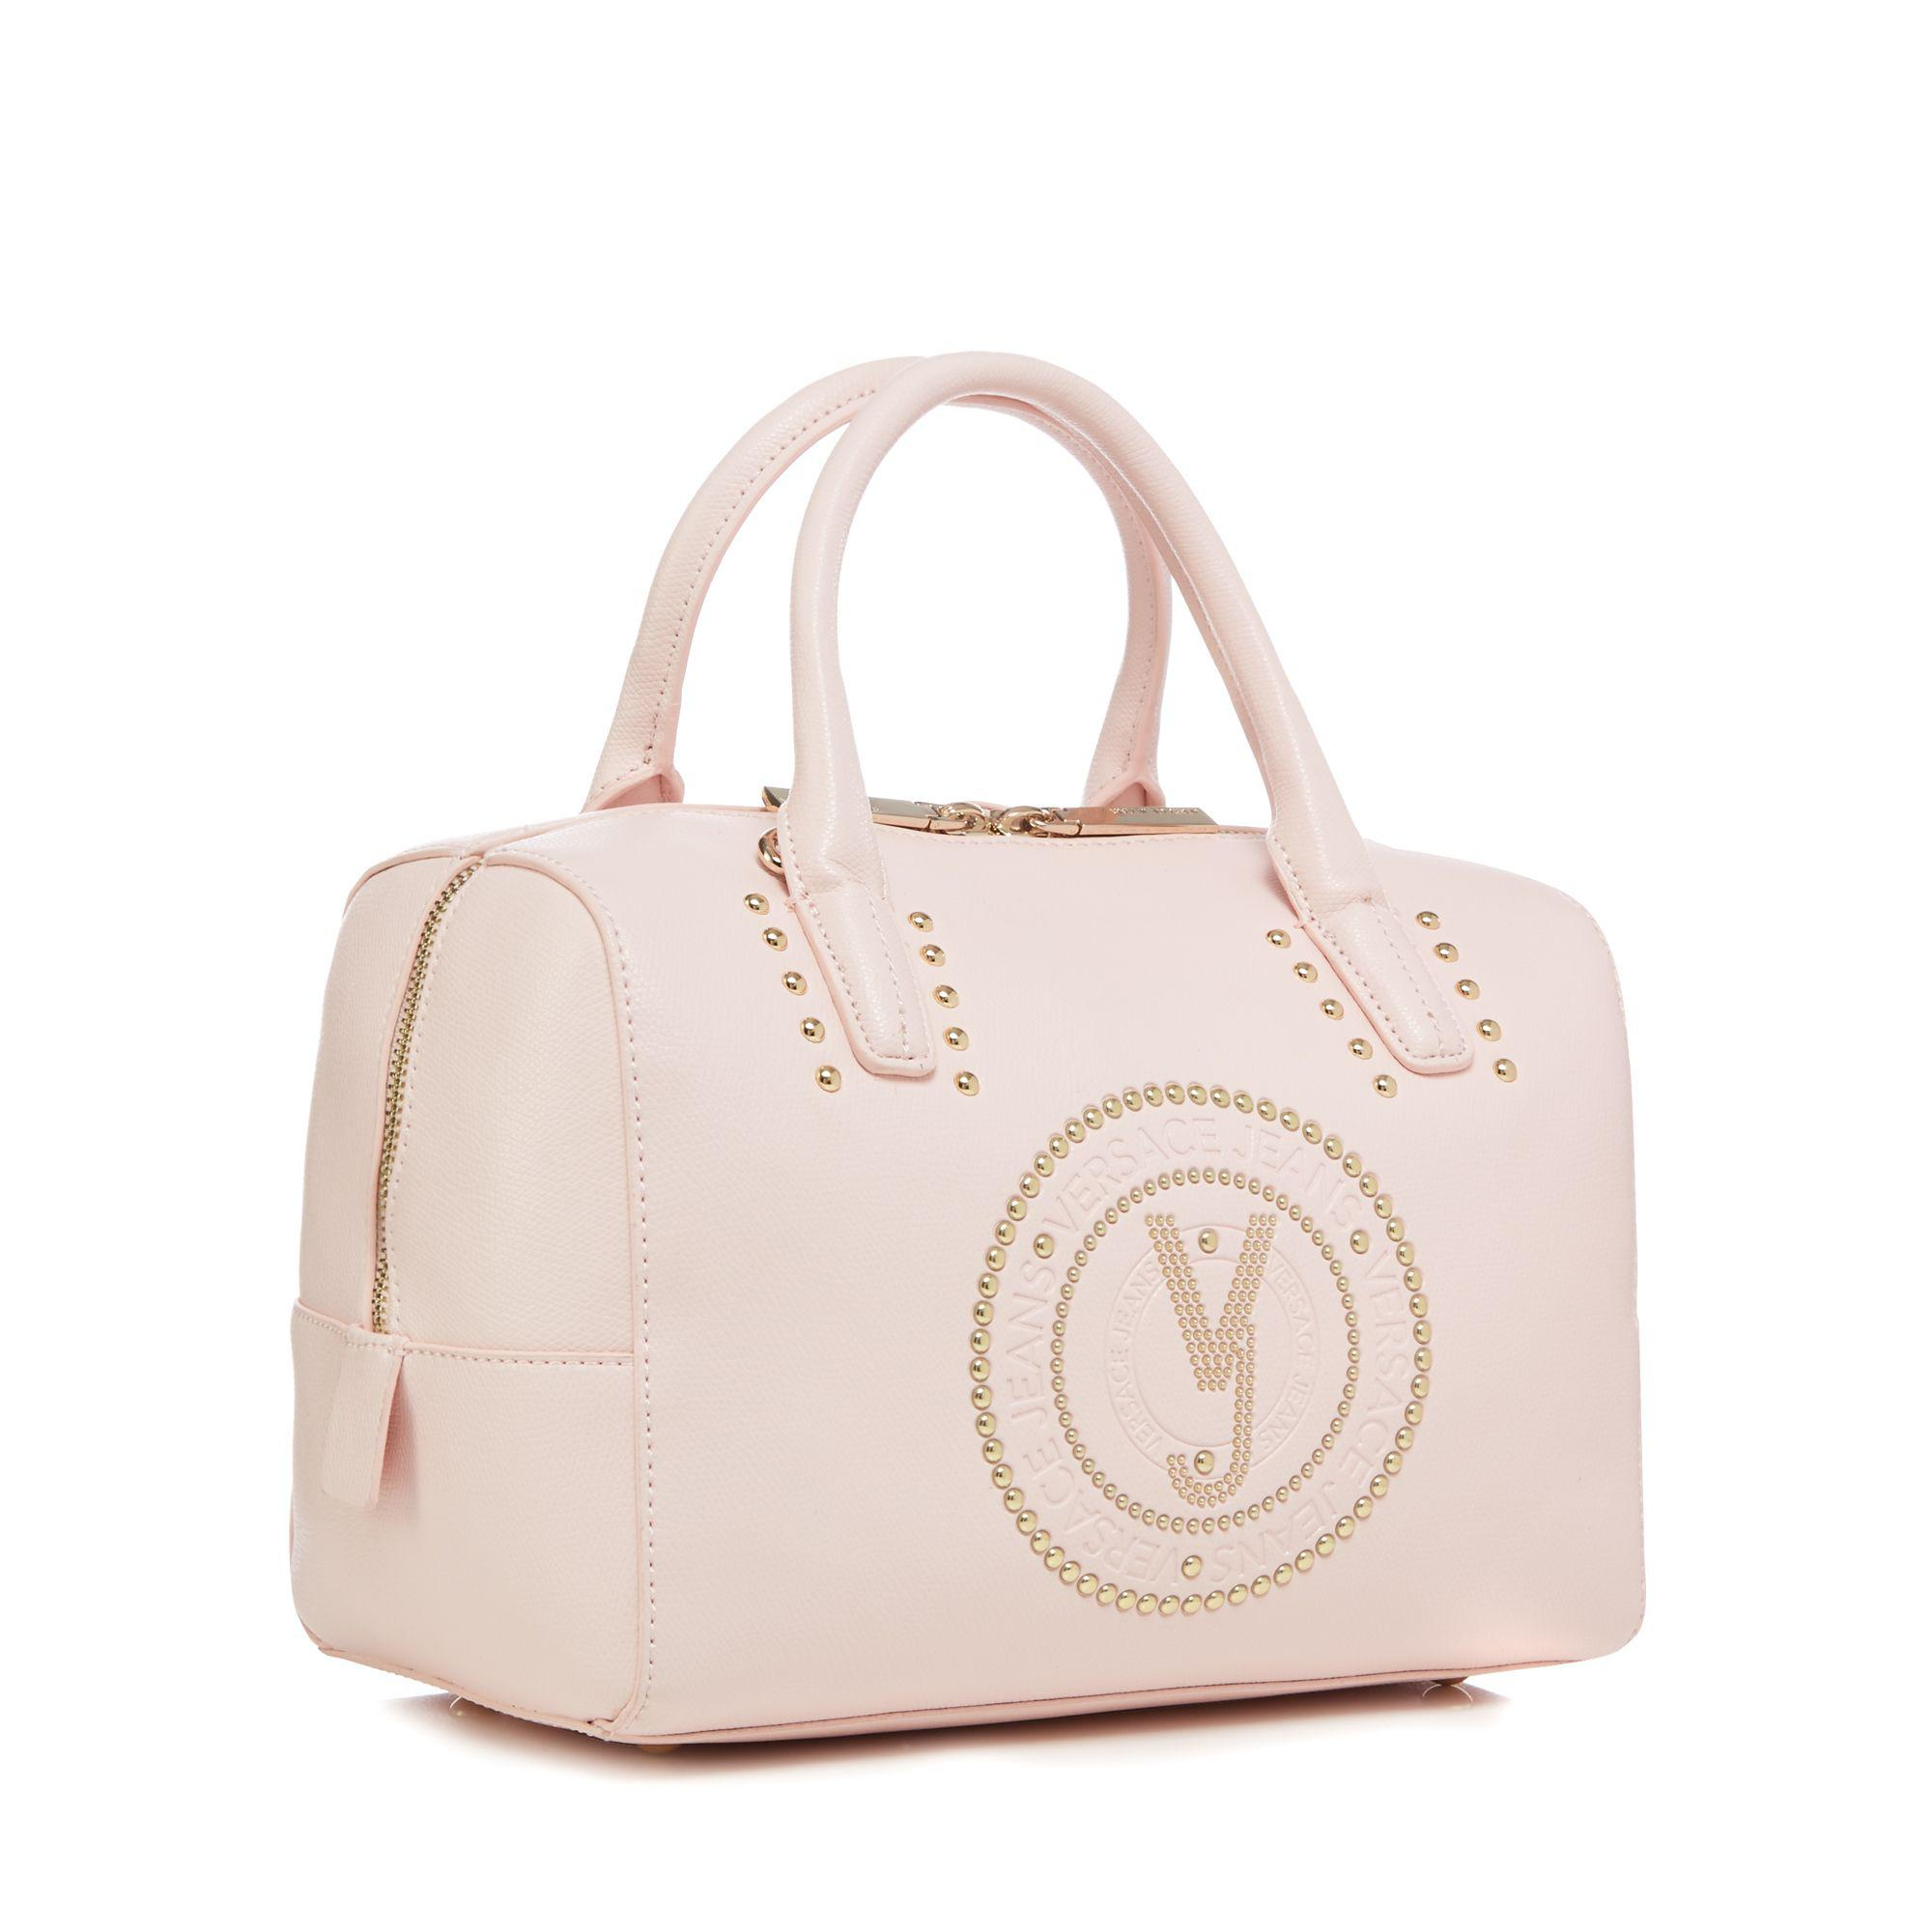 7516d0f7702 Versace Jeans - Light Pink Embossed Bowler Bag - Lyst. View fullscreen  brand new 53abe ...